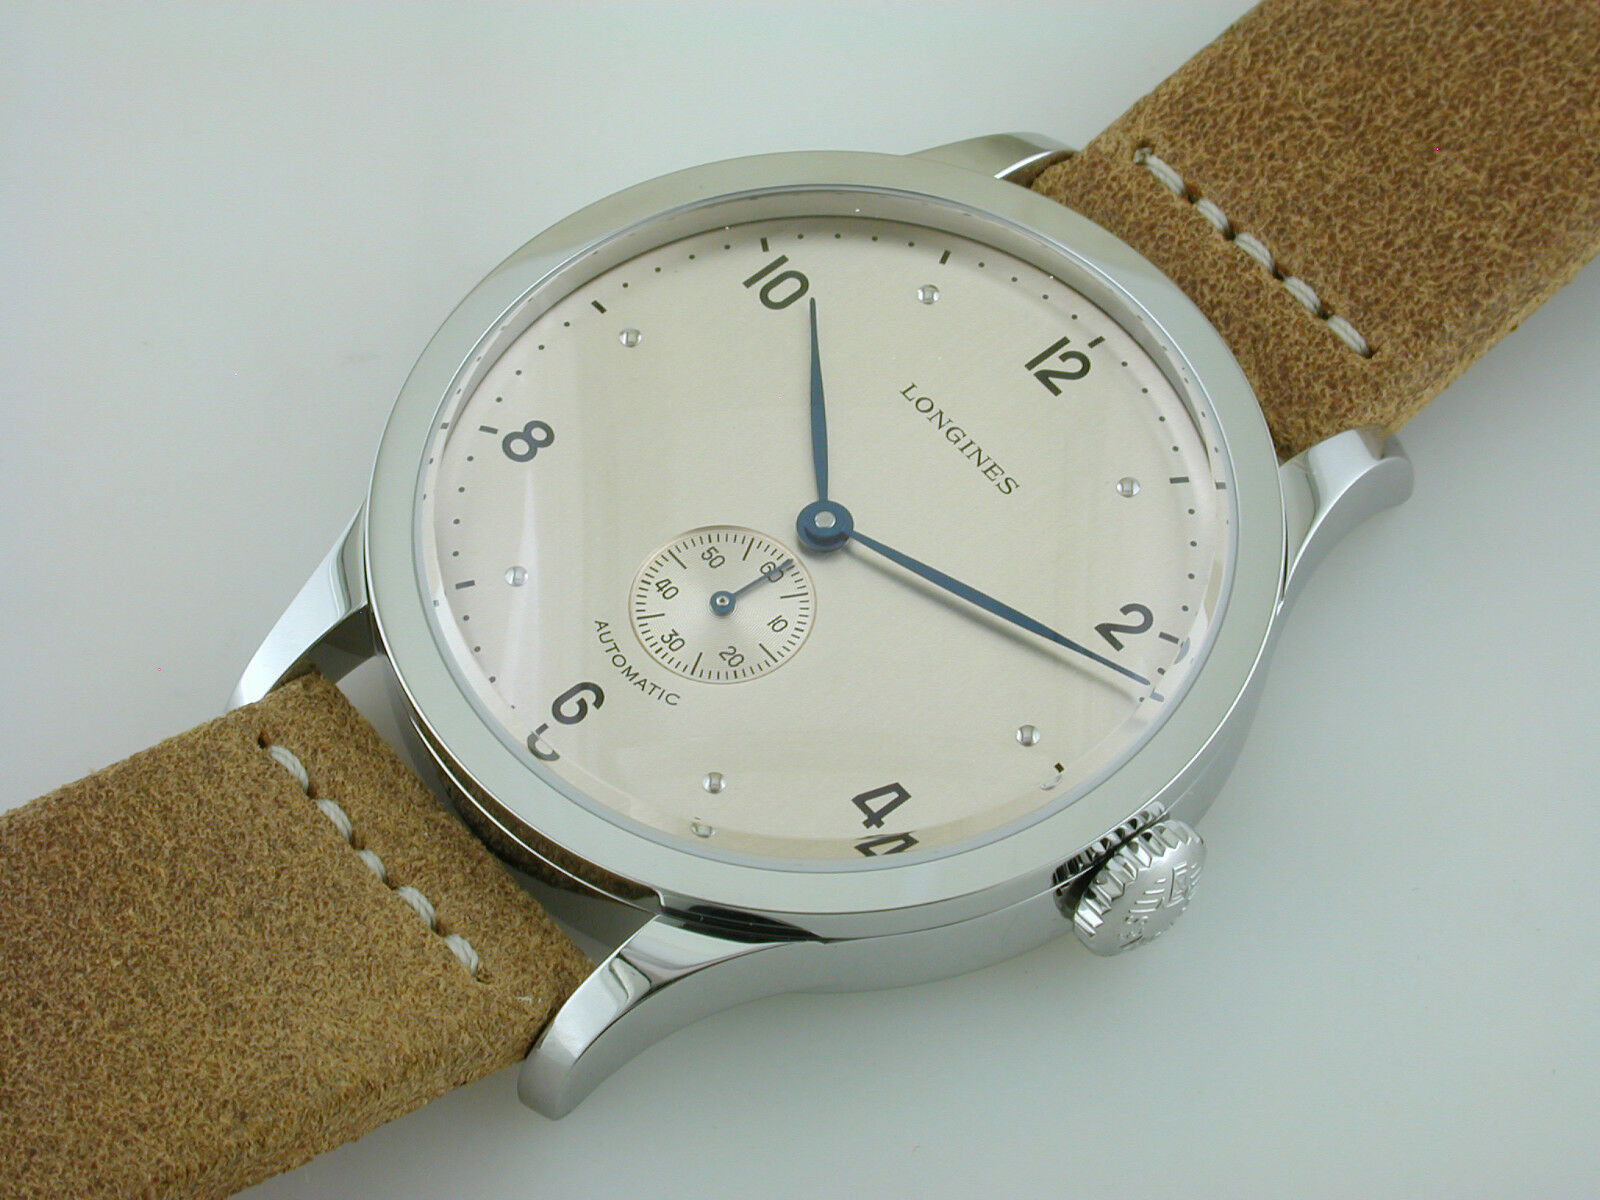 Watch picture 4